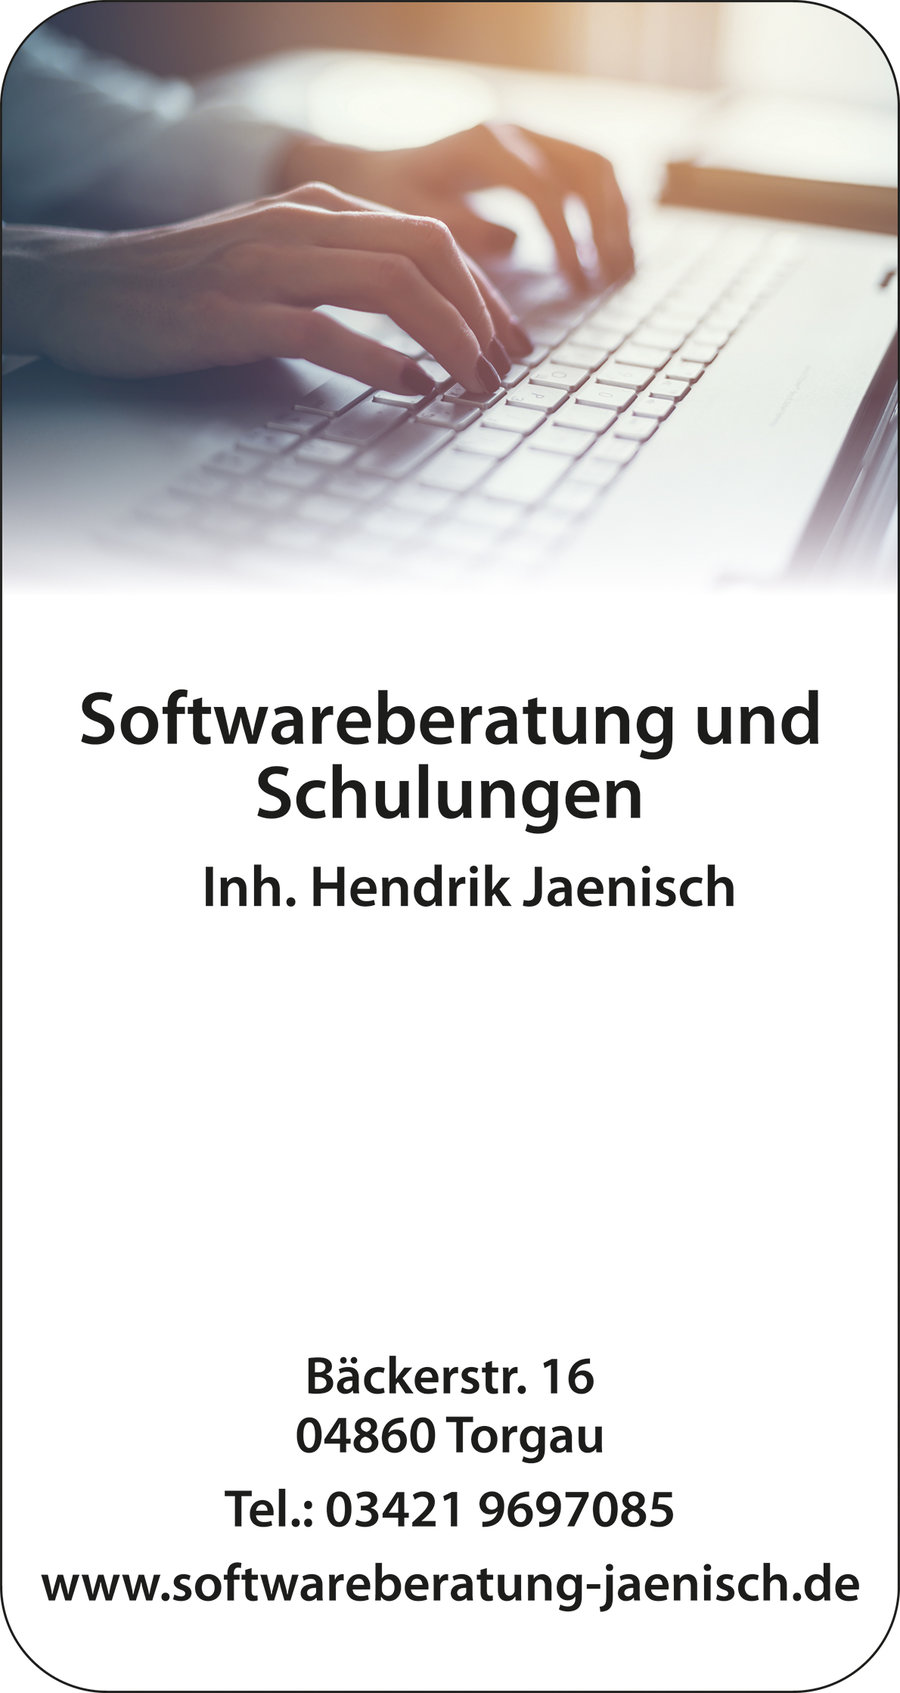 Softwareberatung